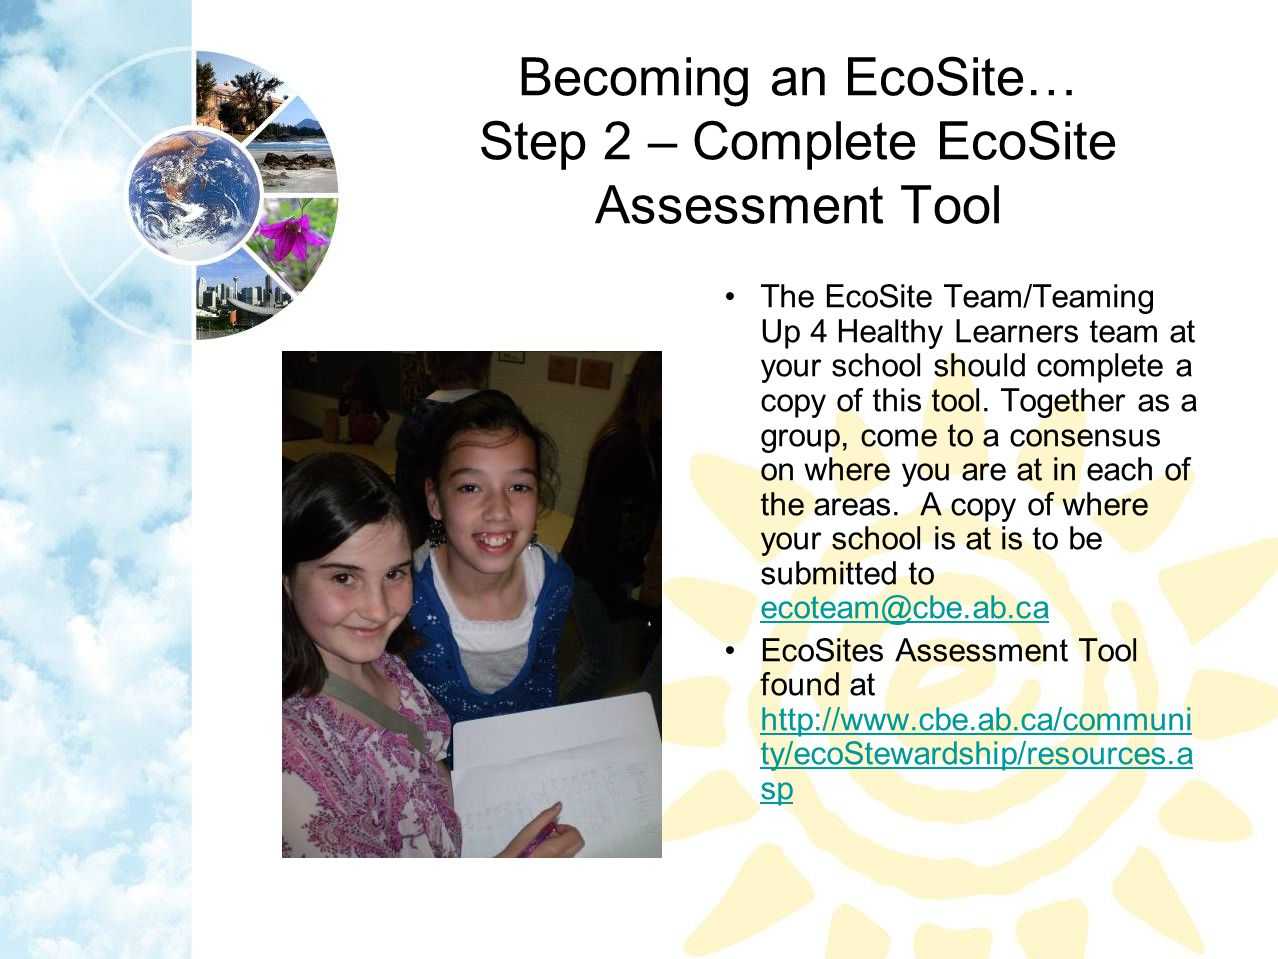 Becoming an EcoSite… Step 2 – Complete EcoSite Assessment Tool The EcoSite Team/Teaming Up 4 Healthy Learners team at your school should complete a copy of this tool.